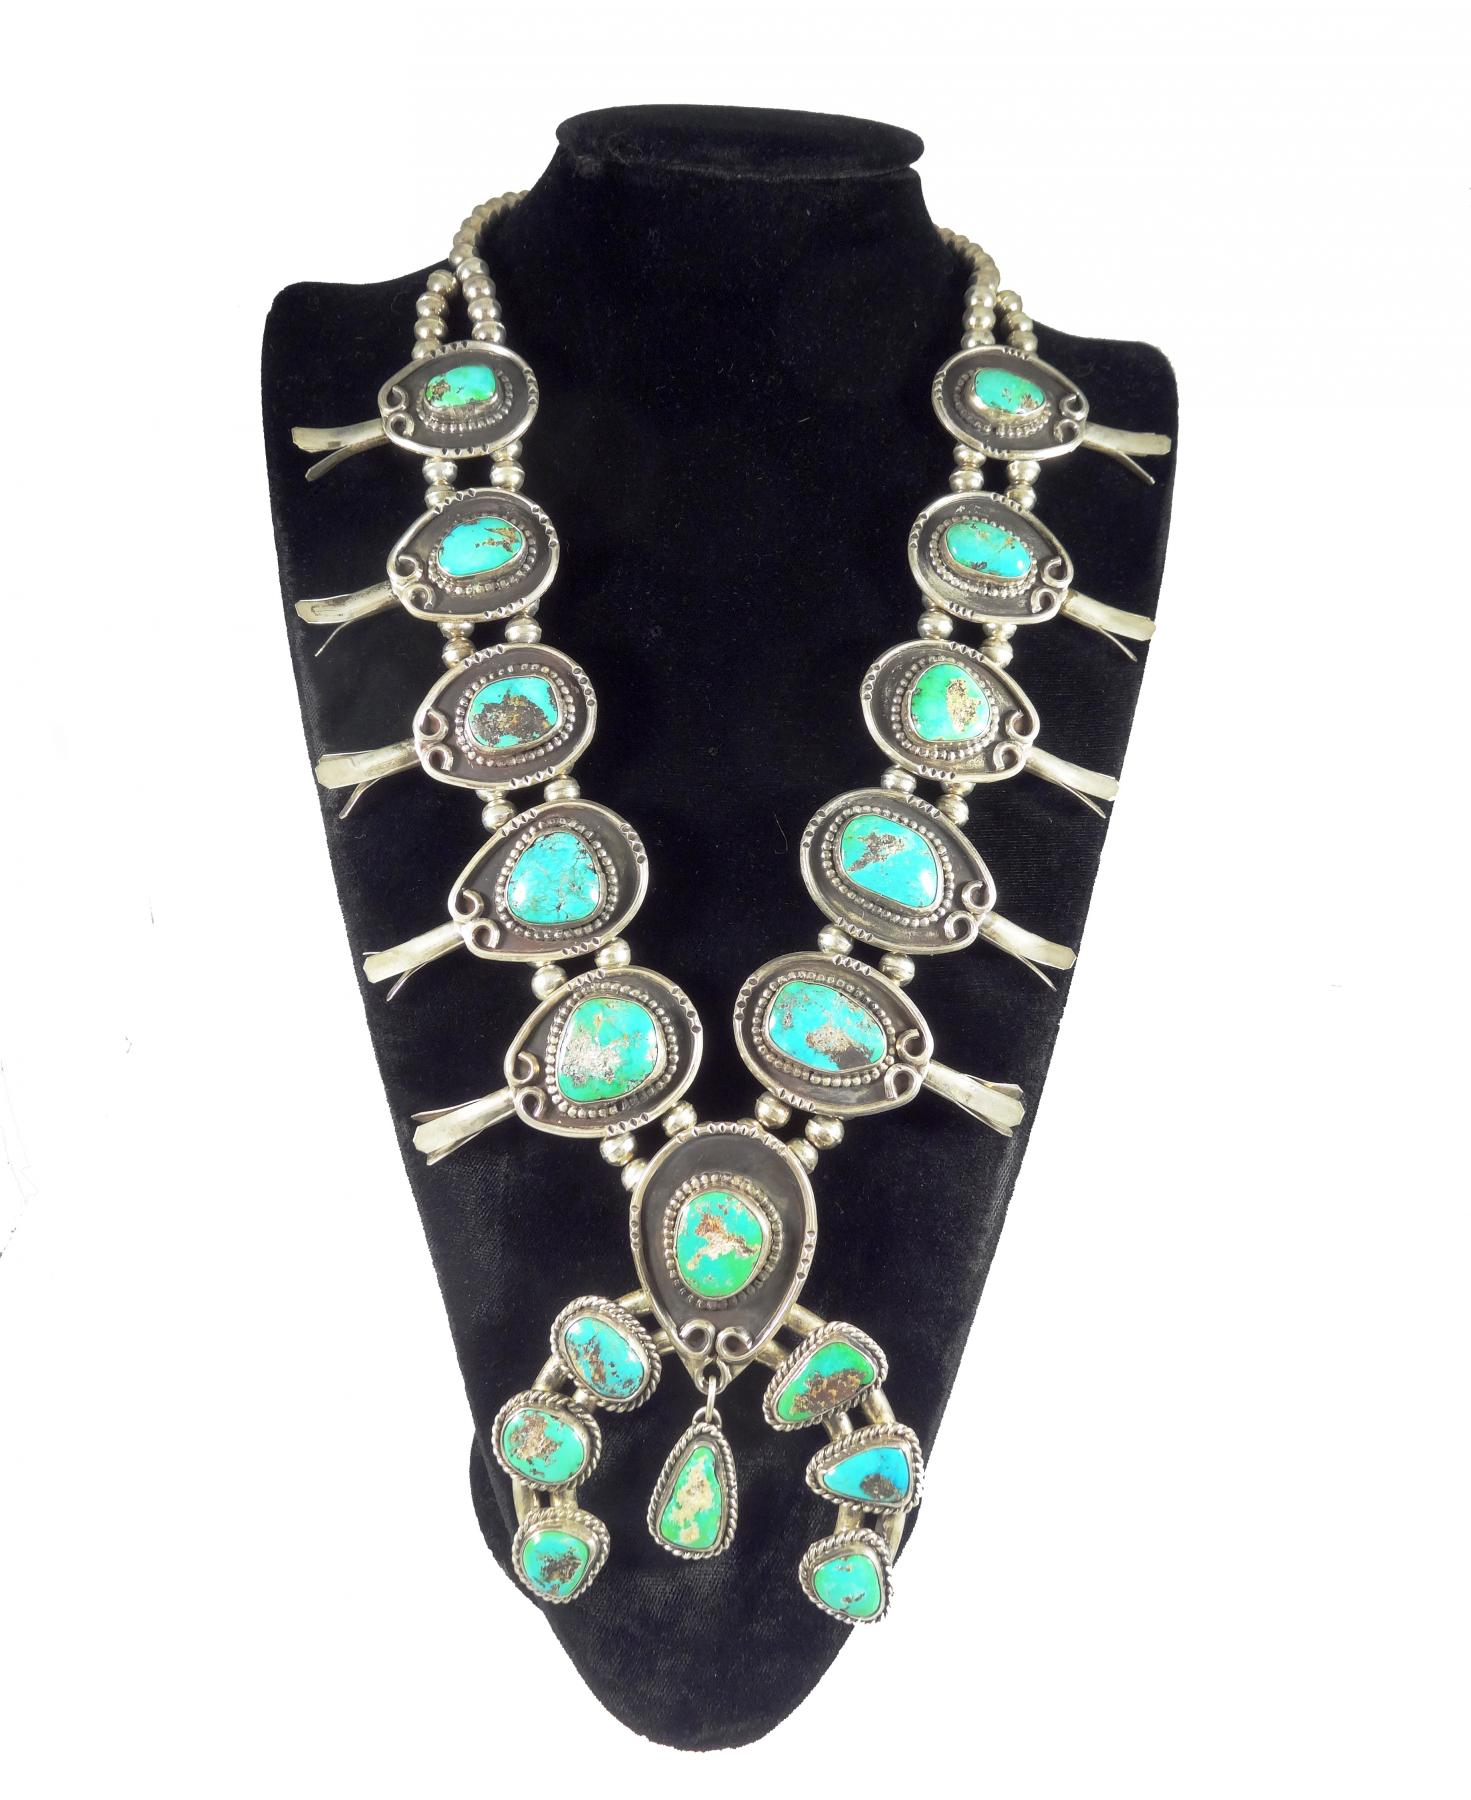 r gold abq jewelry bisbee albuquerque l blossom sterling turquoise category archives jewellery necklace native american massive squash product navajo silver